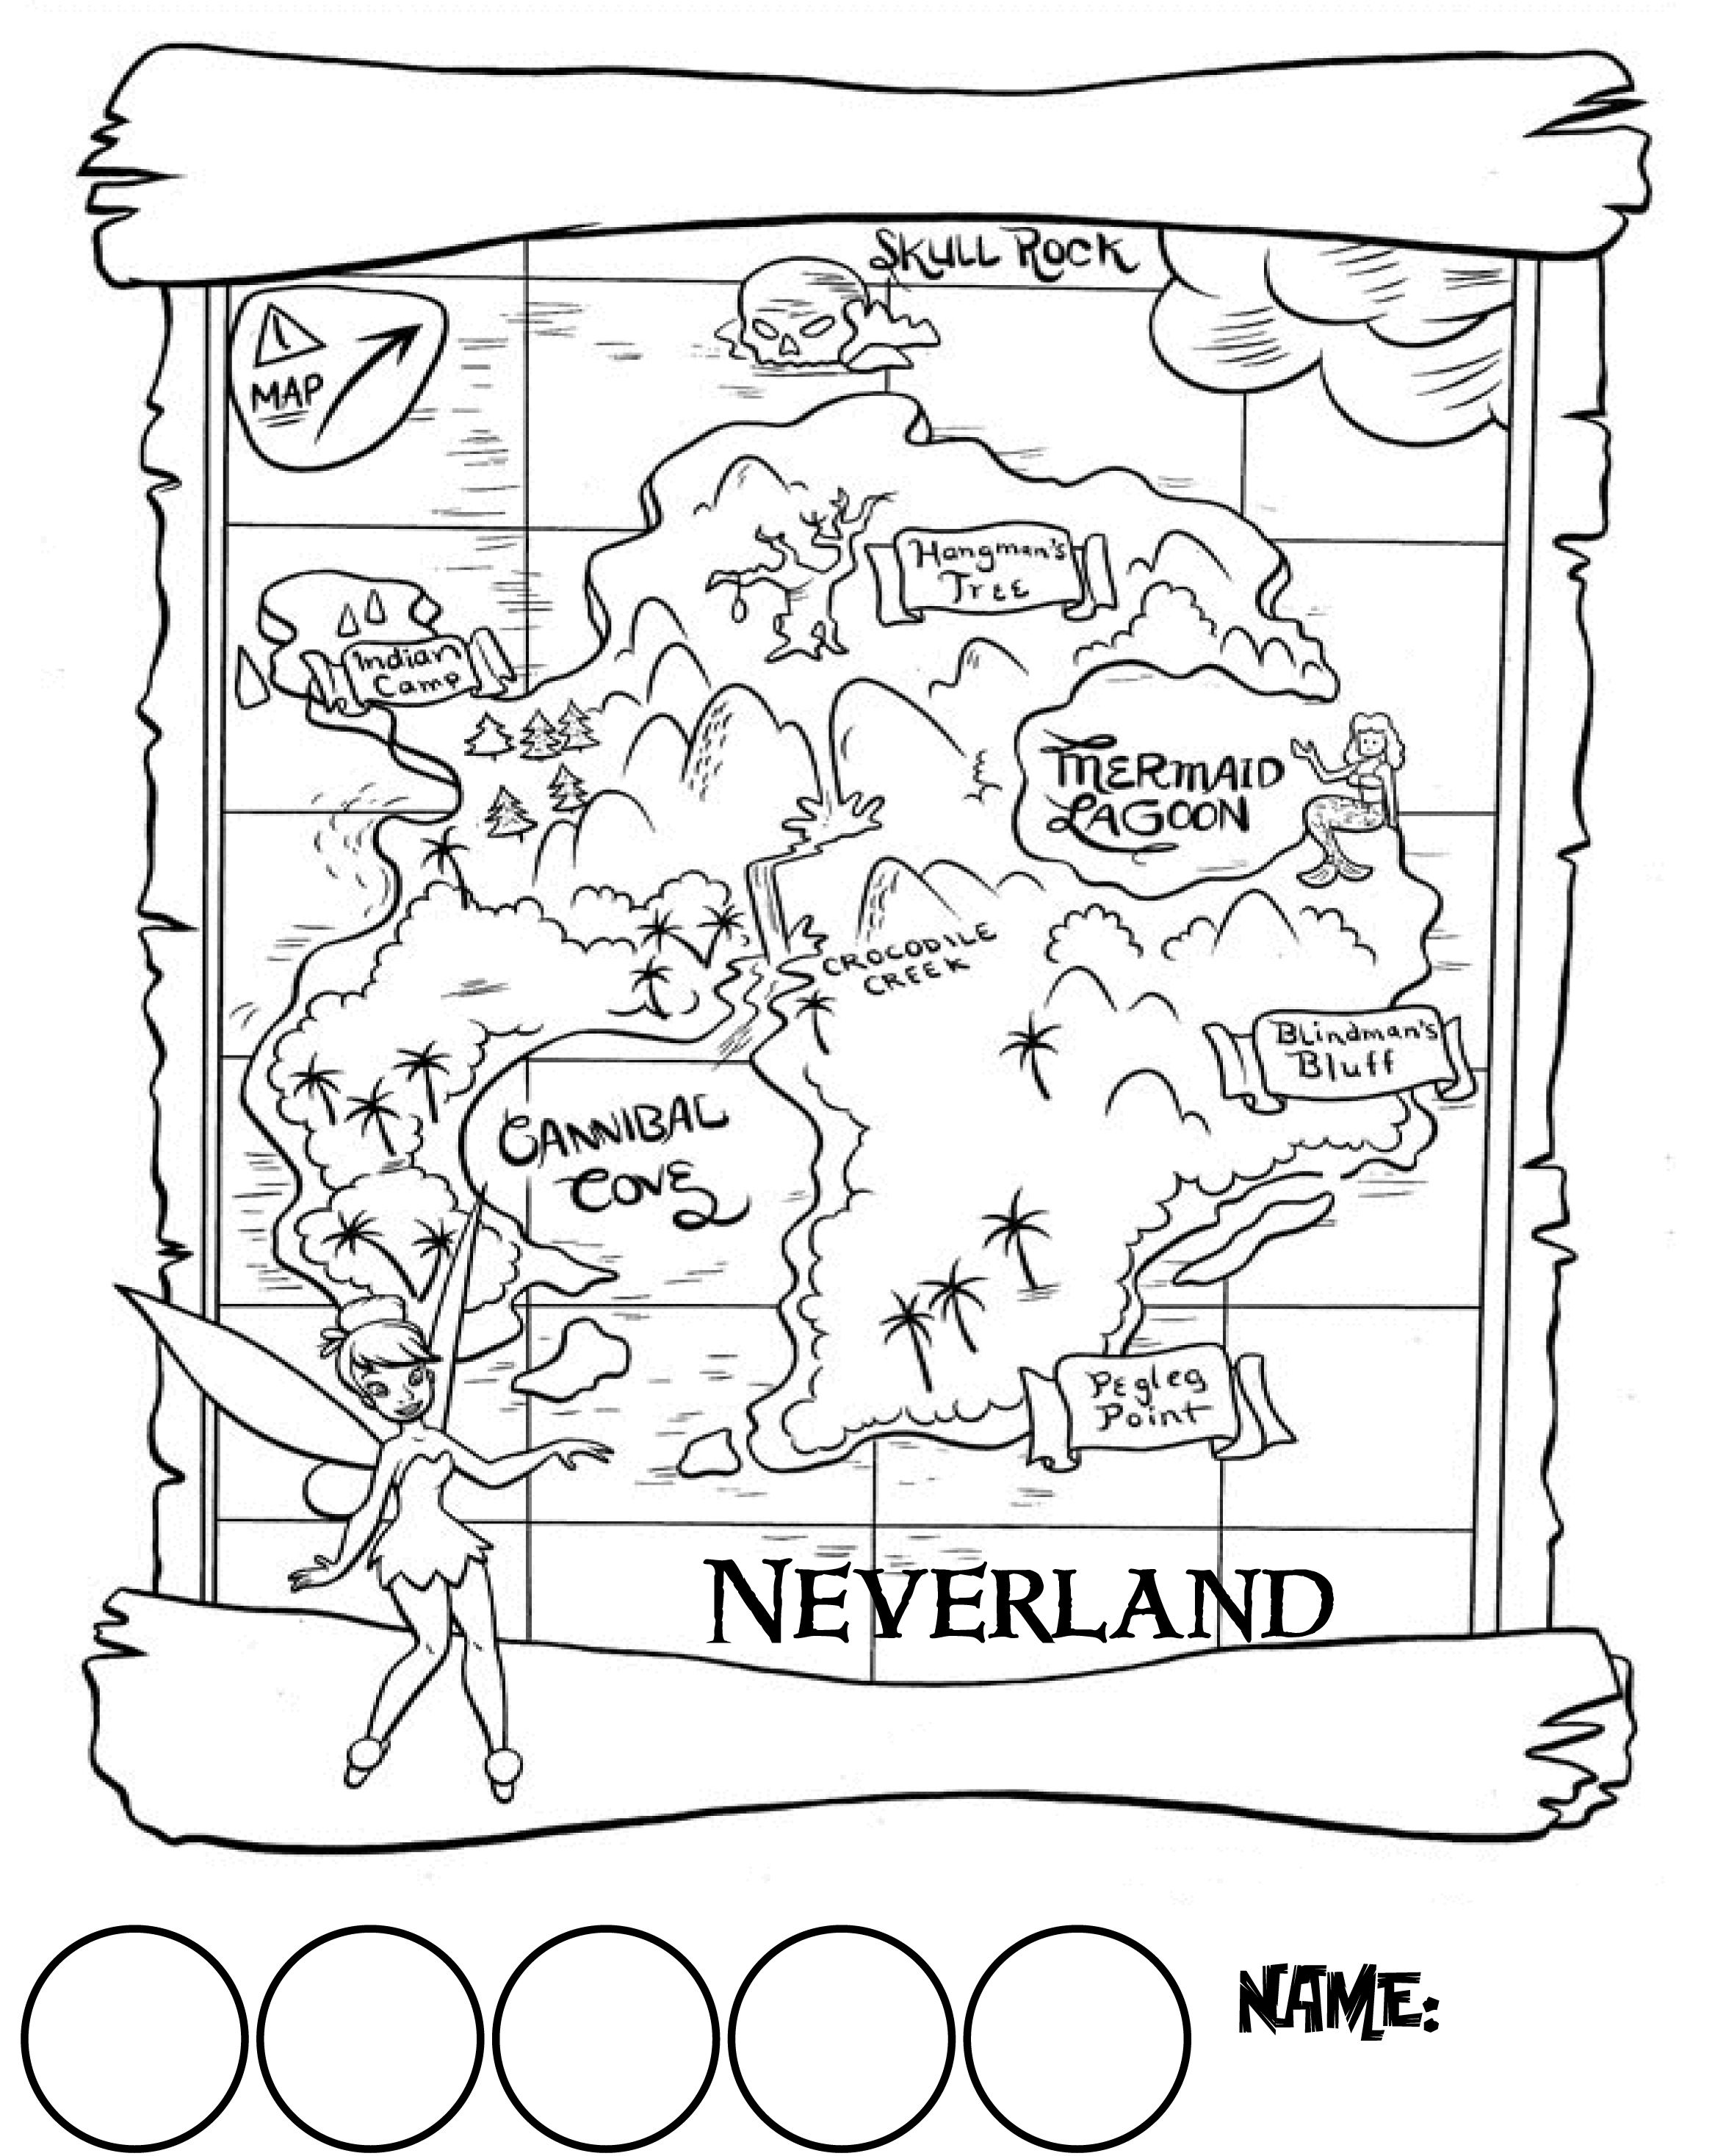 Vertical Map Of Neverland With Circles For Collecting 1 Gold Doubloon Stickers Peter Pan Coloring Pages Peter Pan Crafts Summer Coloring Pages